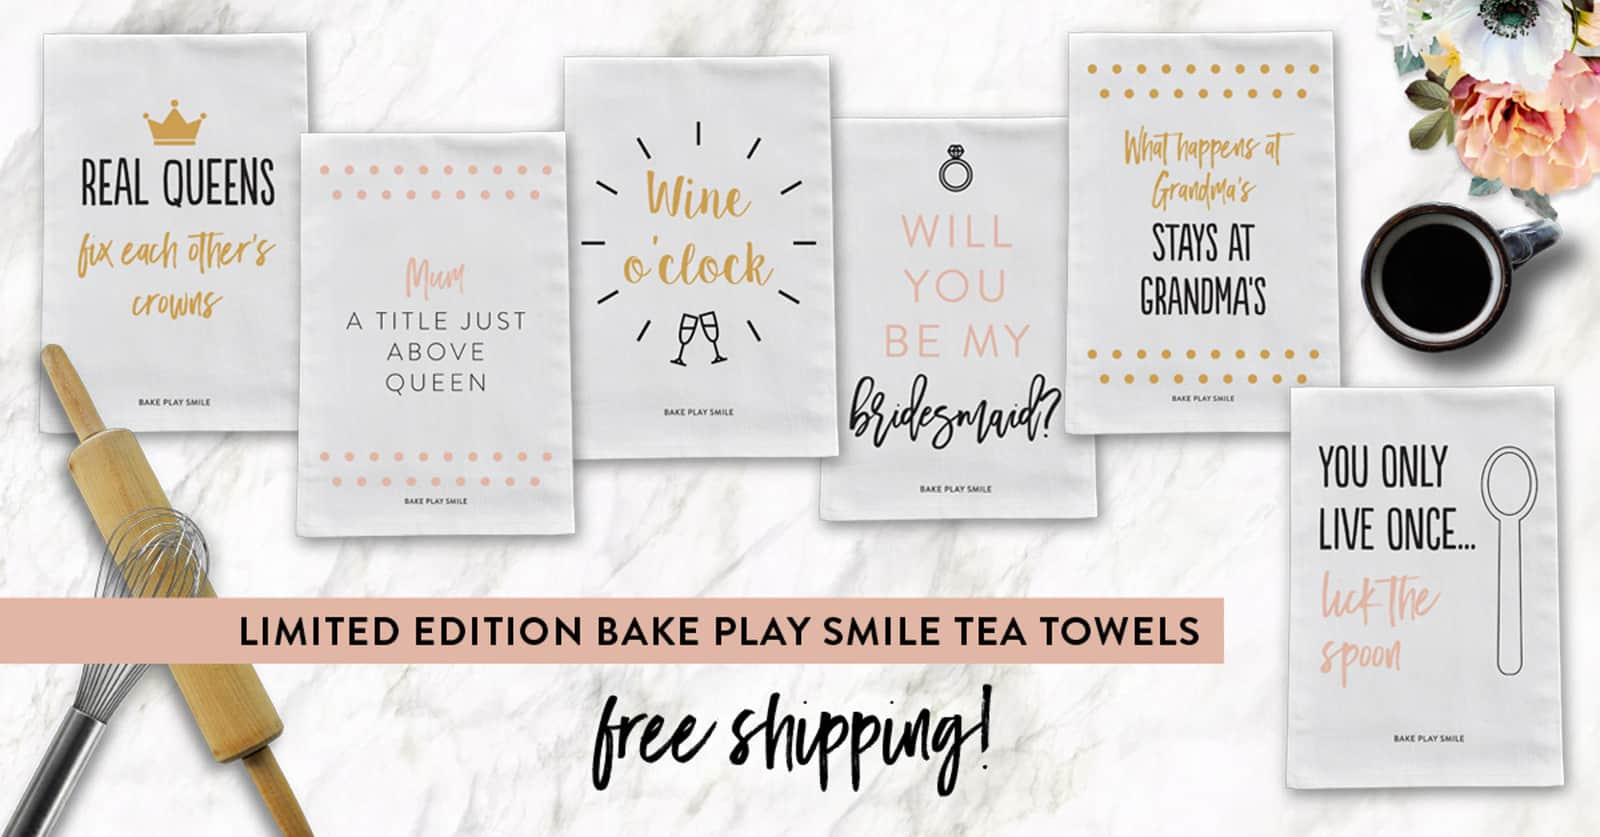 Limited Edition Bake Play Smile Tea Towels